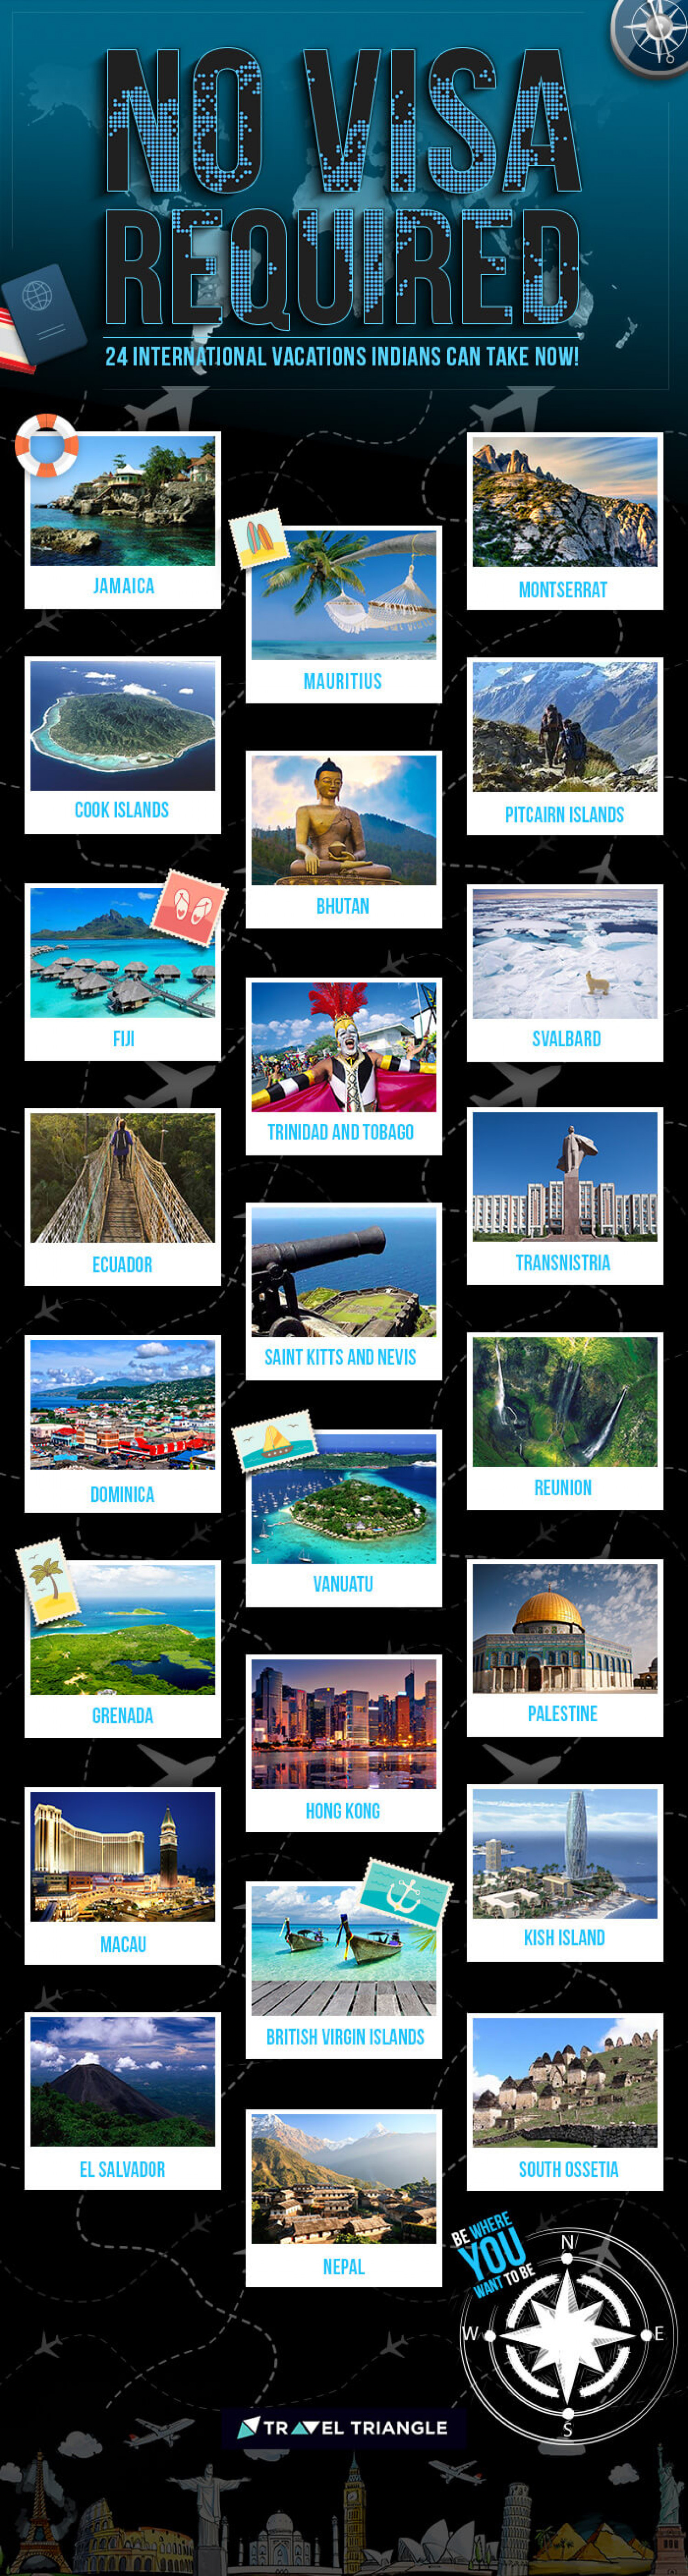 24 Amazing International Vacations Indians Can Take Without A Visa Infographic